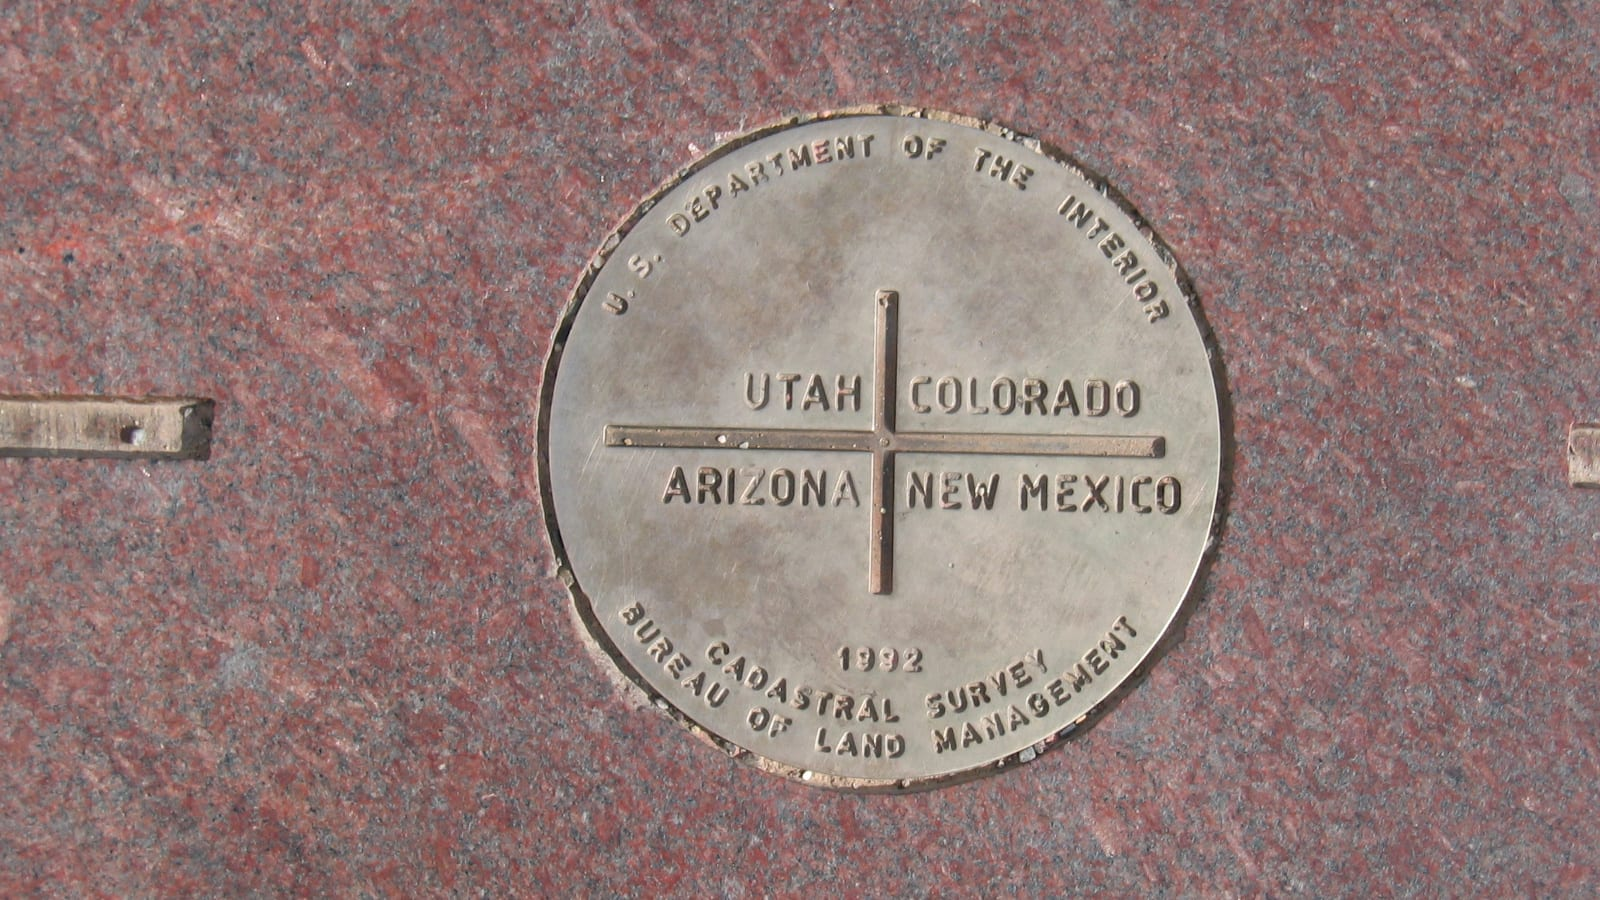 Four Corners National Monument Plaque on Ground